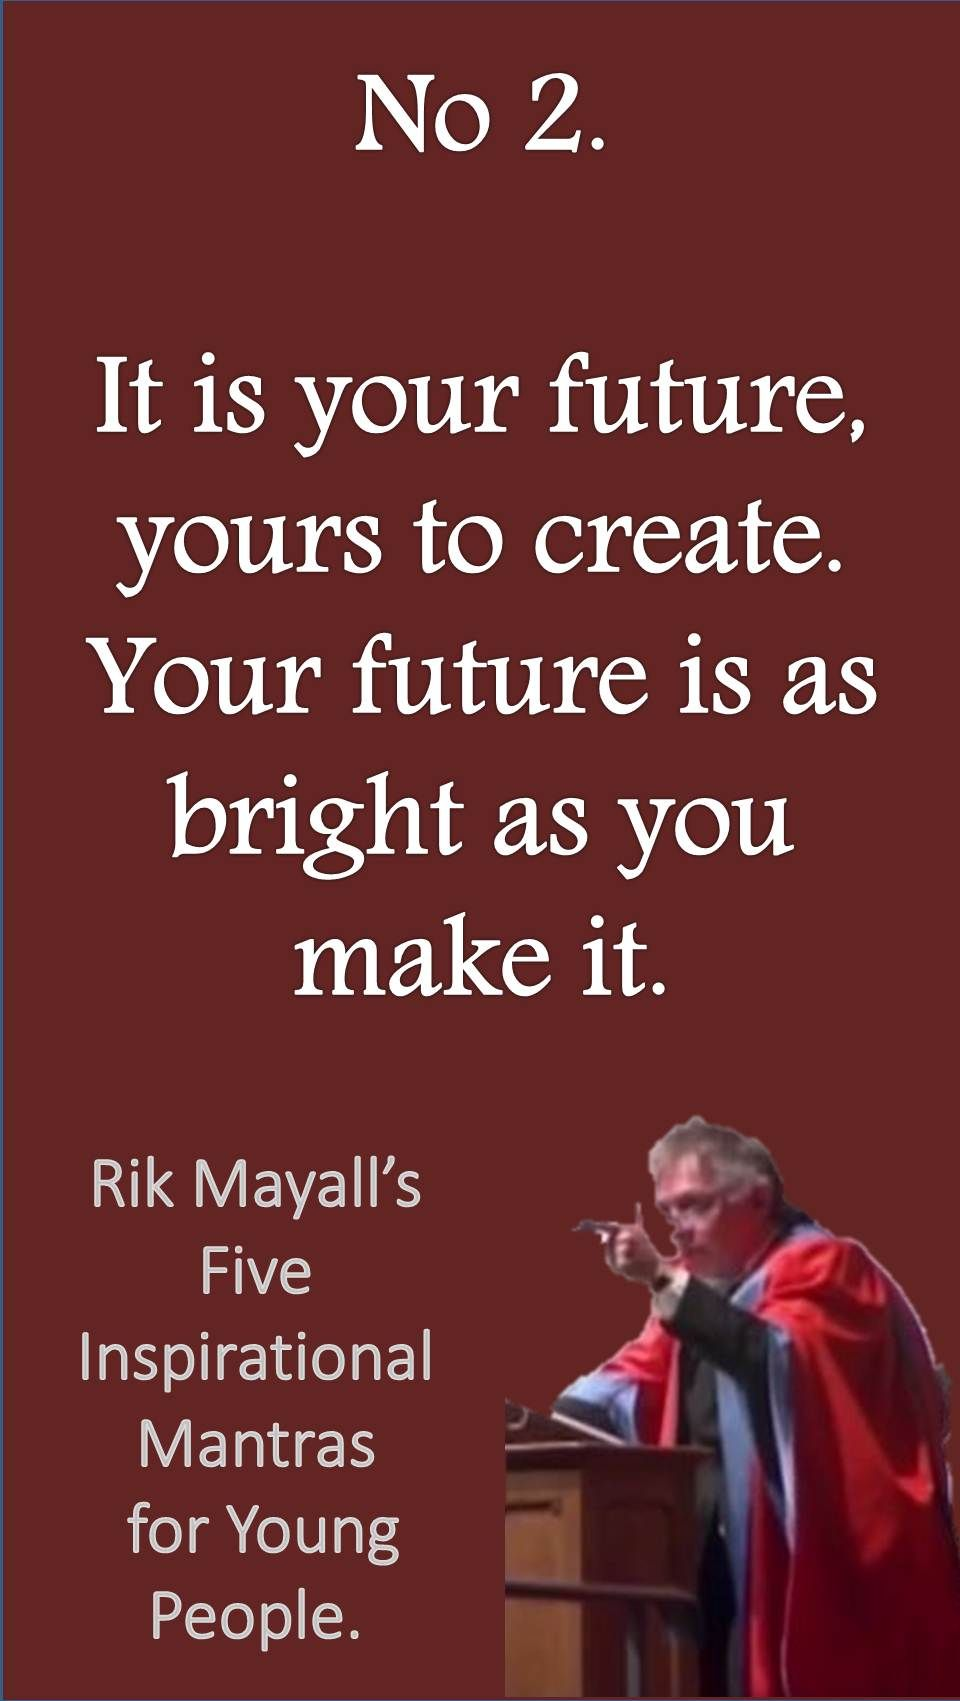 Inspirational Quotes For Young Adults Rik Mayall's 5 Inspirational Mantras For Young People Opportunity